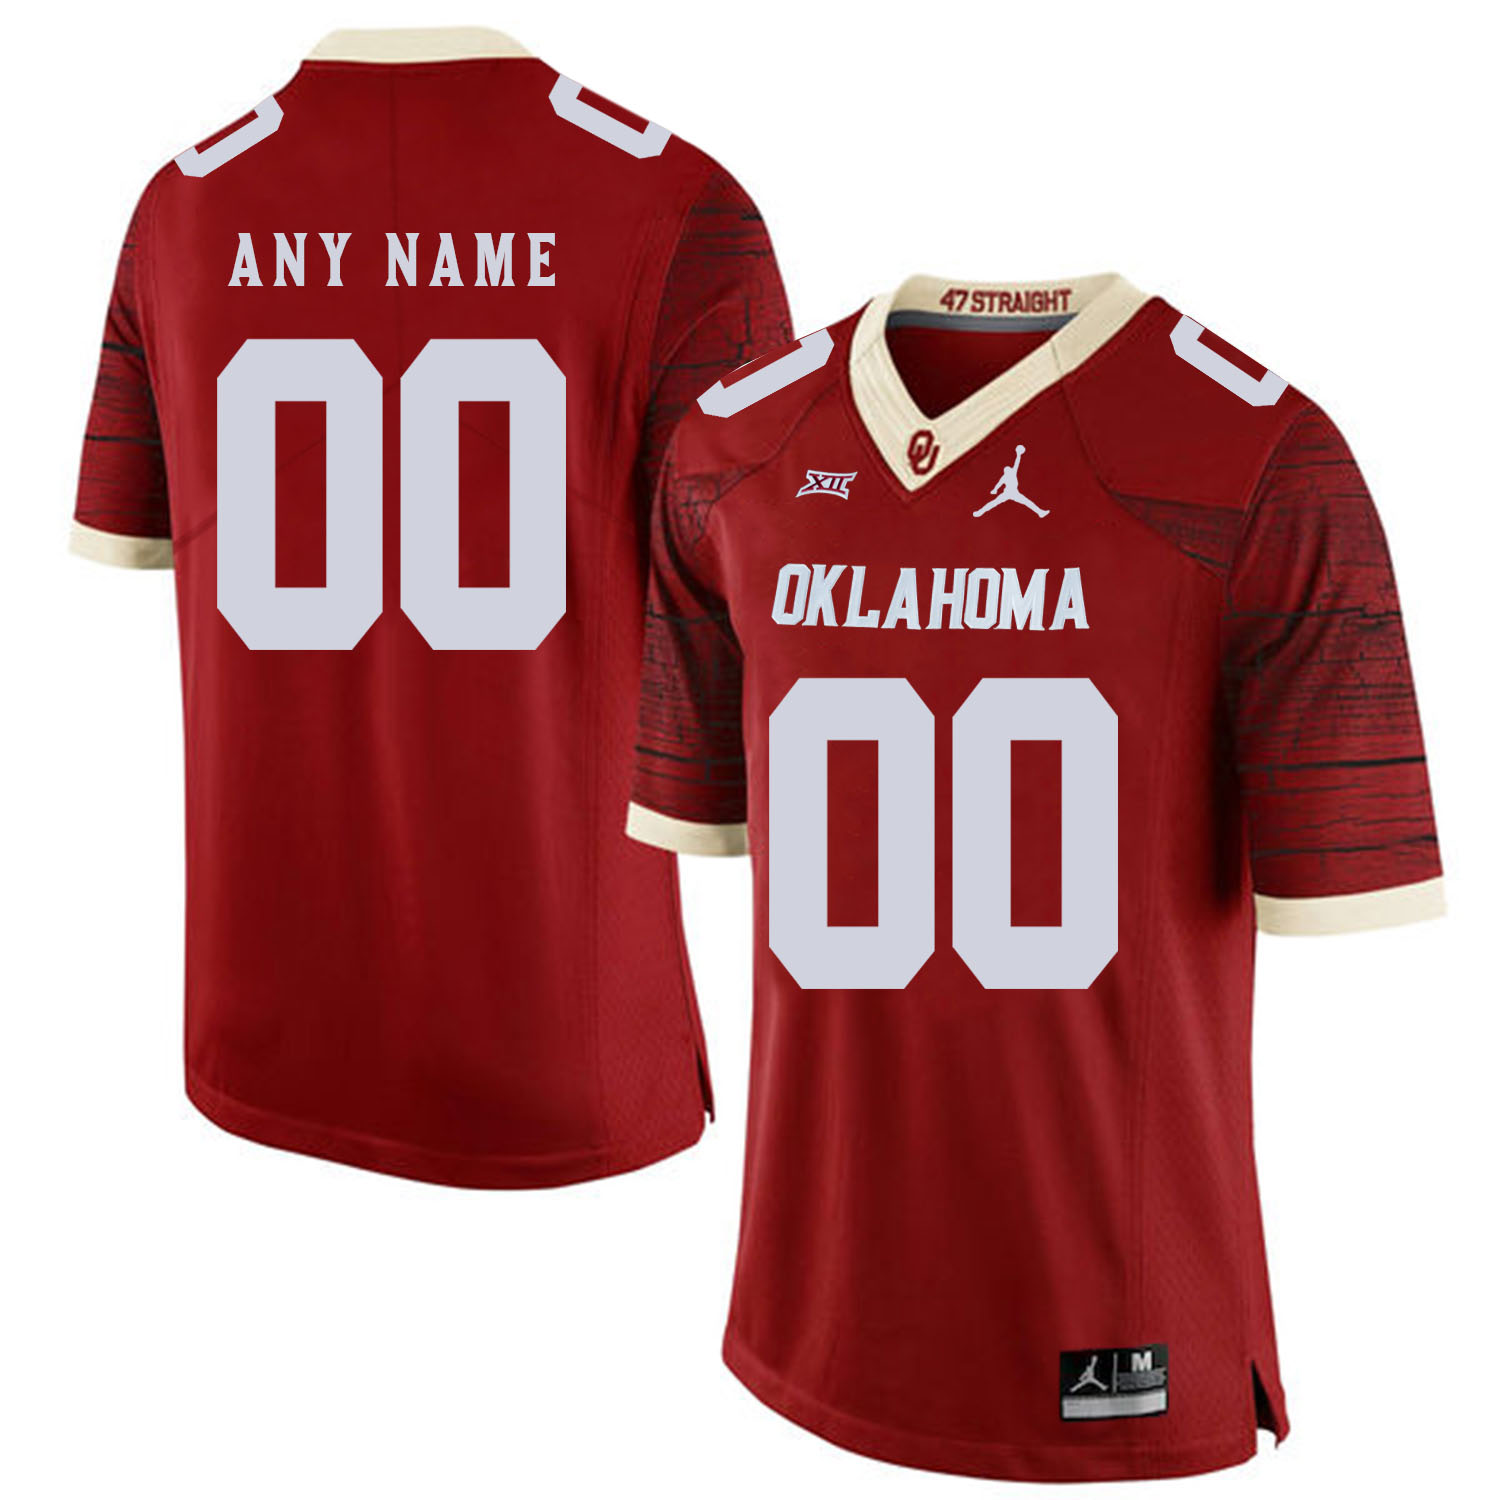 Oklahoma Sooners Men's Customized Red 47 Game Winning Streak College Football Jersey